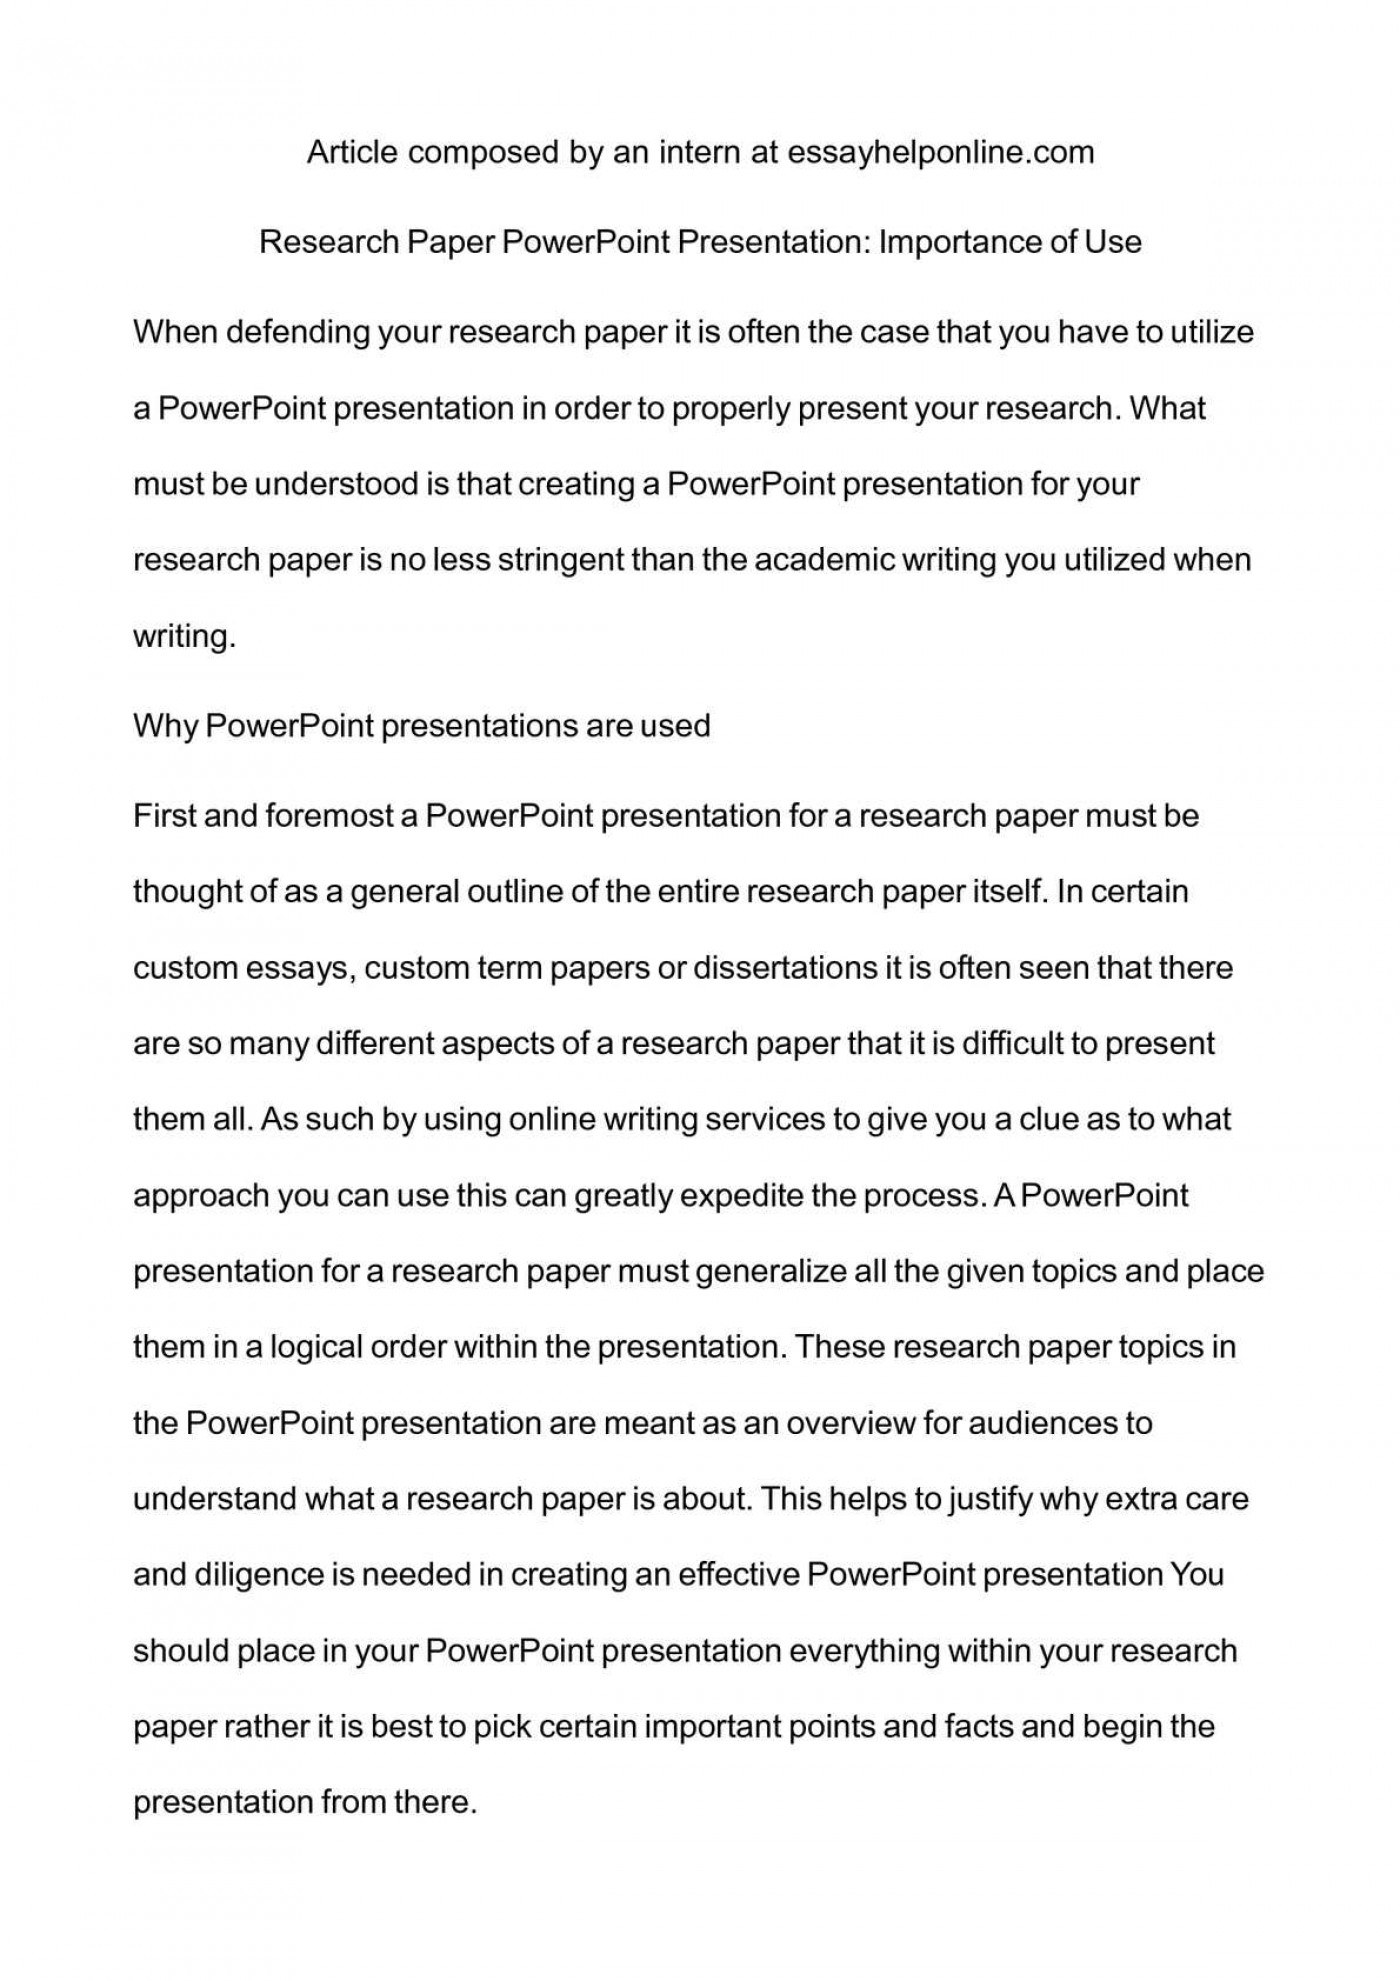 004 How To Research Paper Ppt Outstanding Publish Write Abstract For Prepare 1400